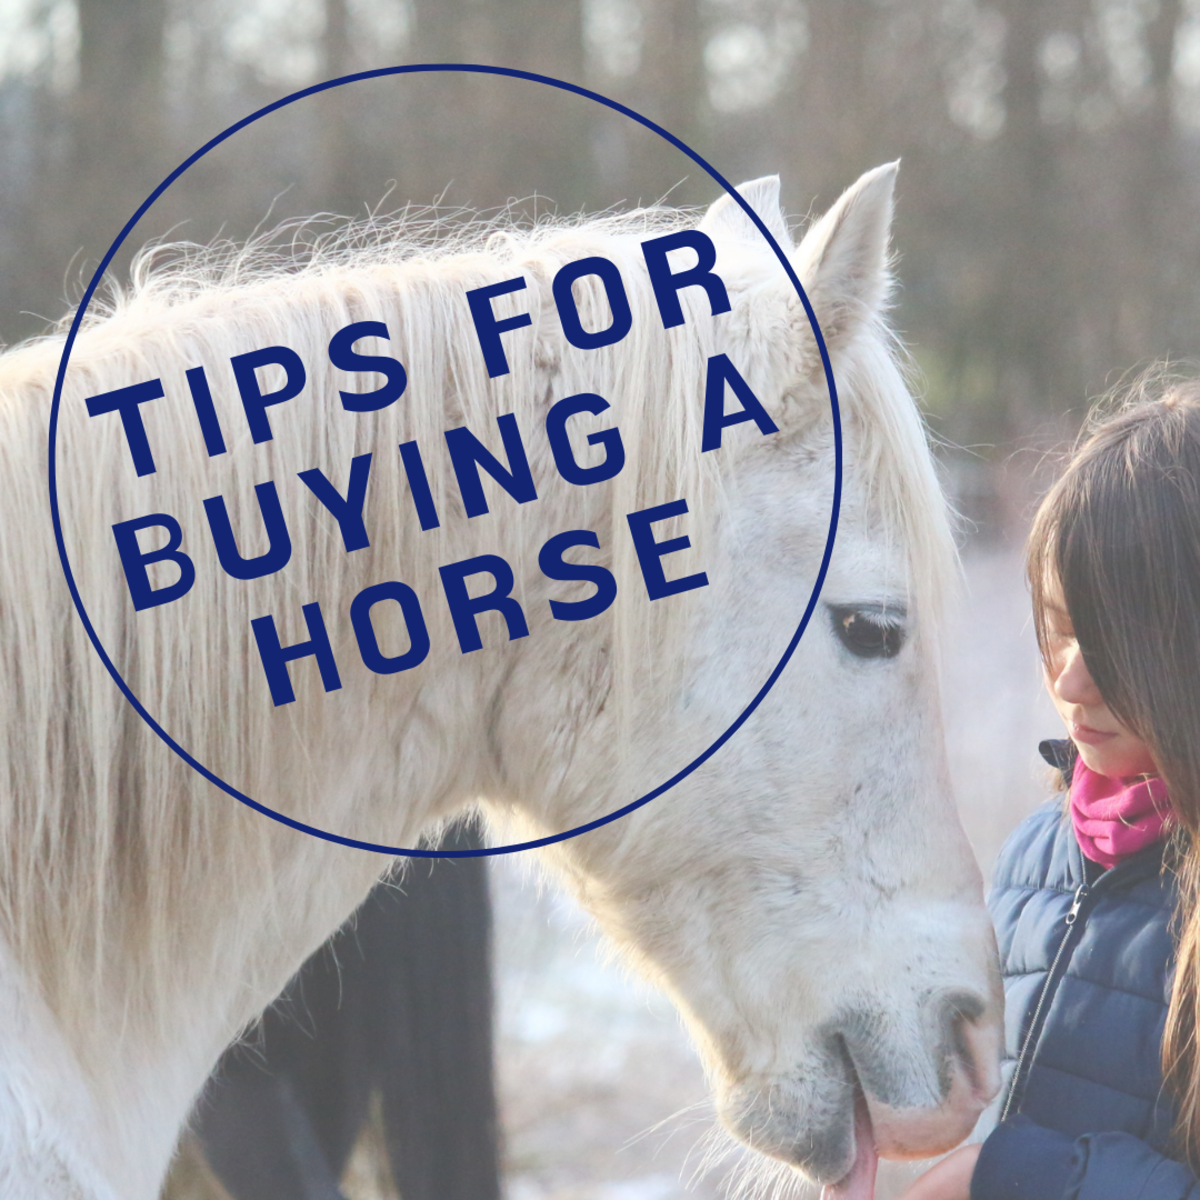 A Guide to Shopping for and Trying Horses